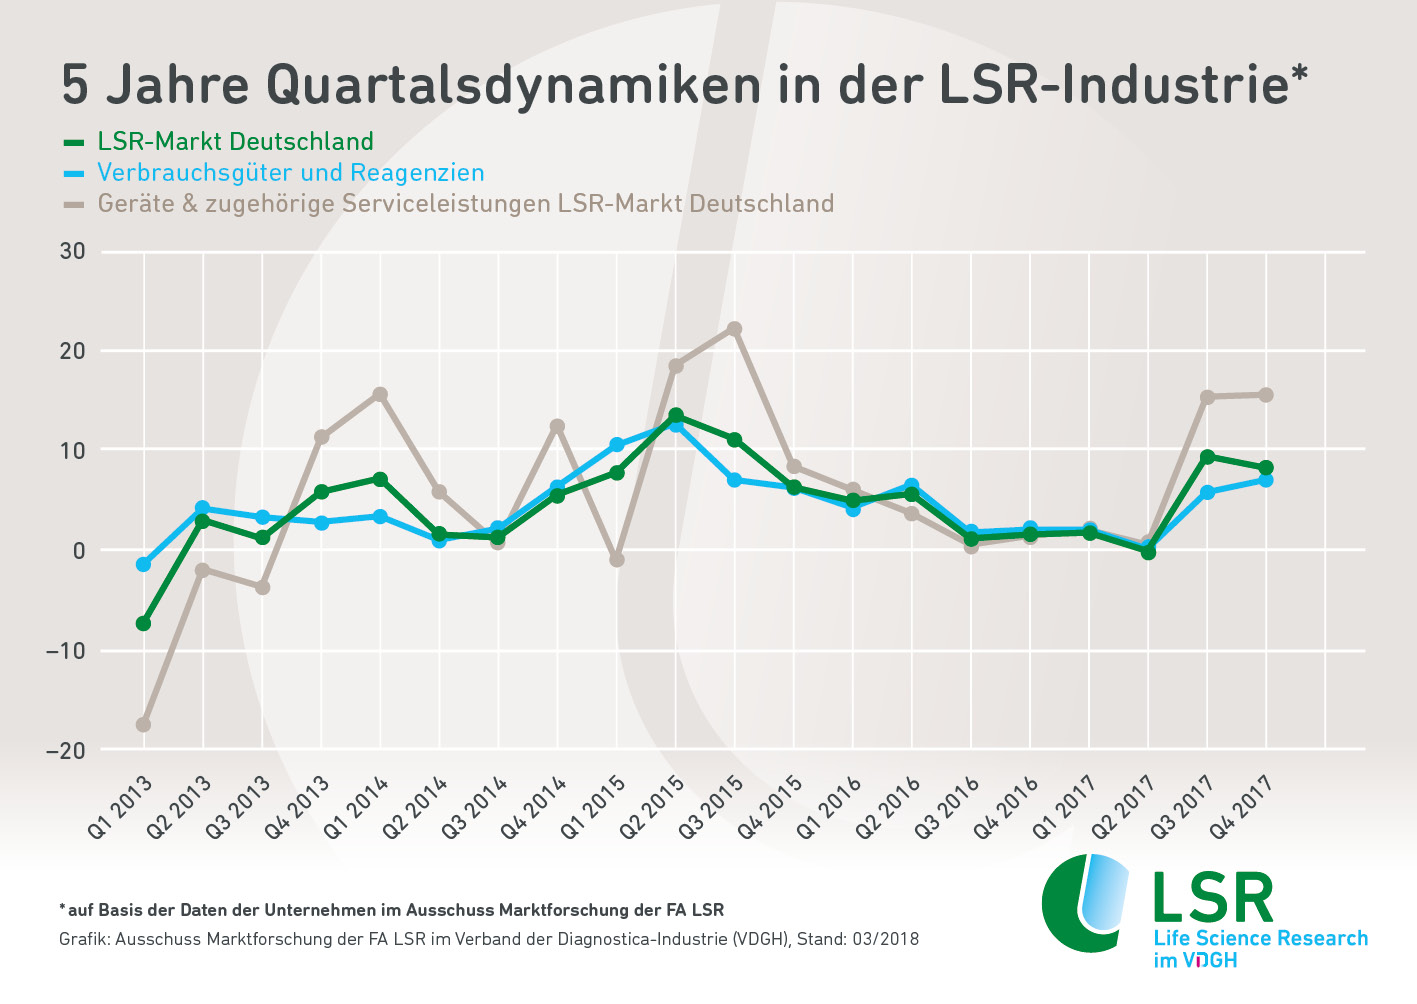 Quartalsdynamiken in der LSR-Industrie